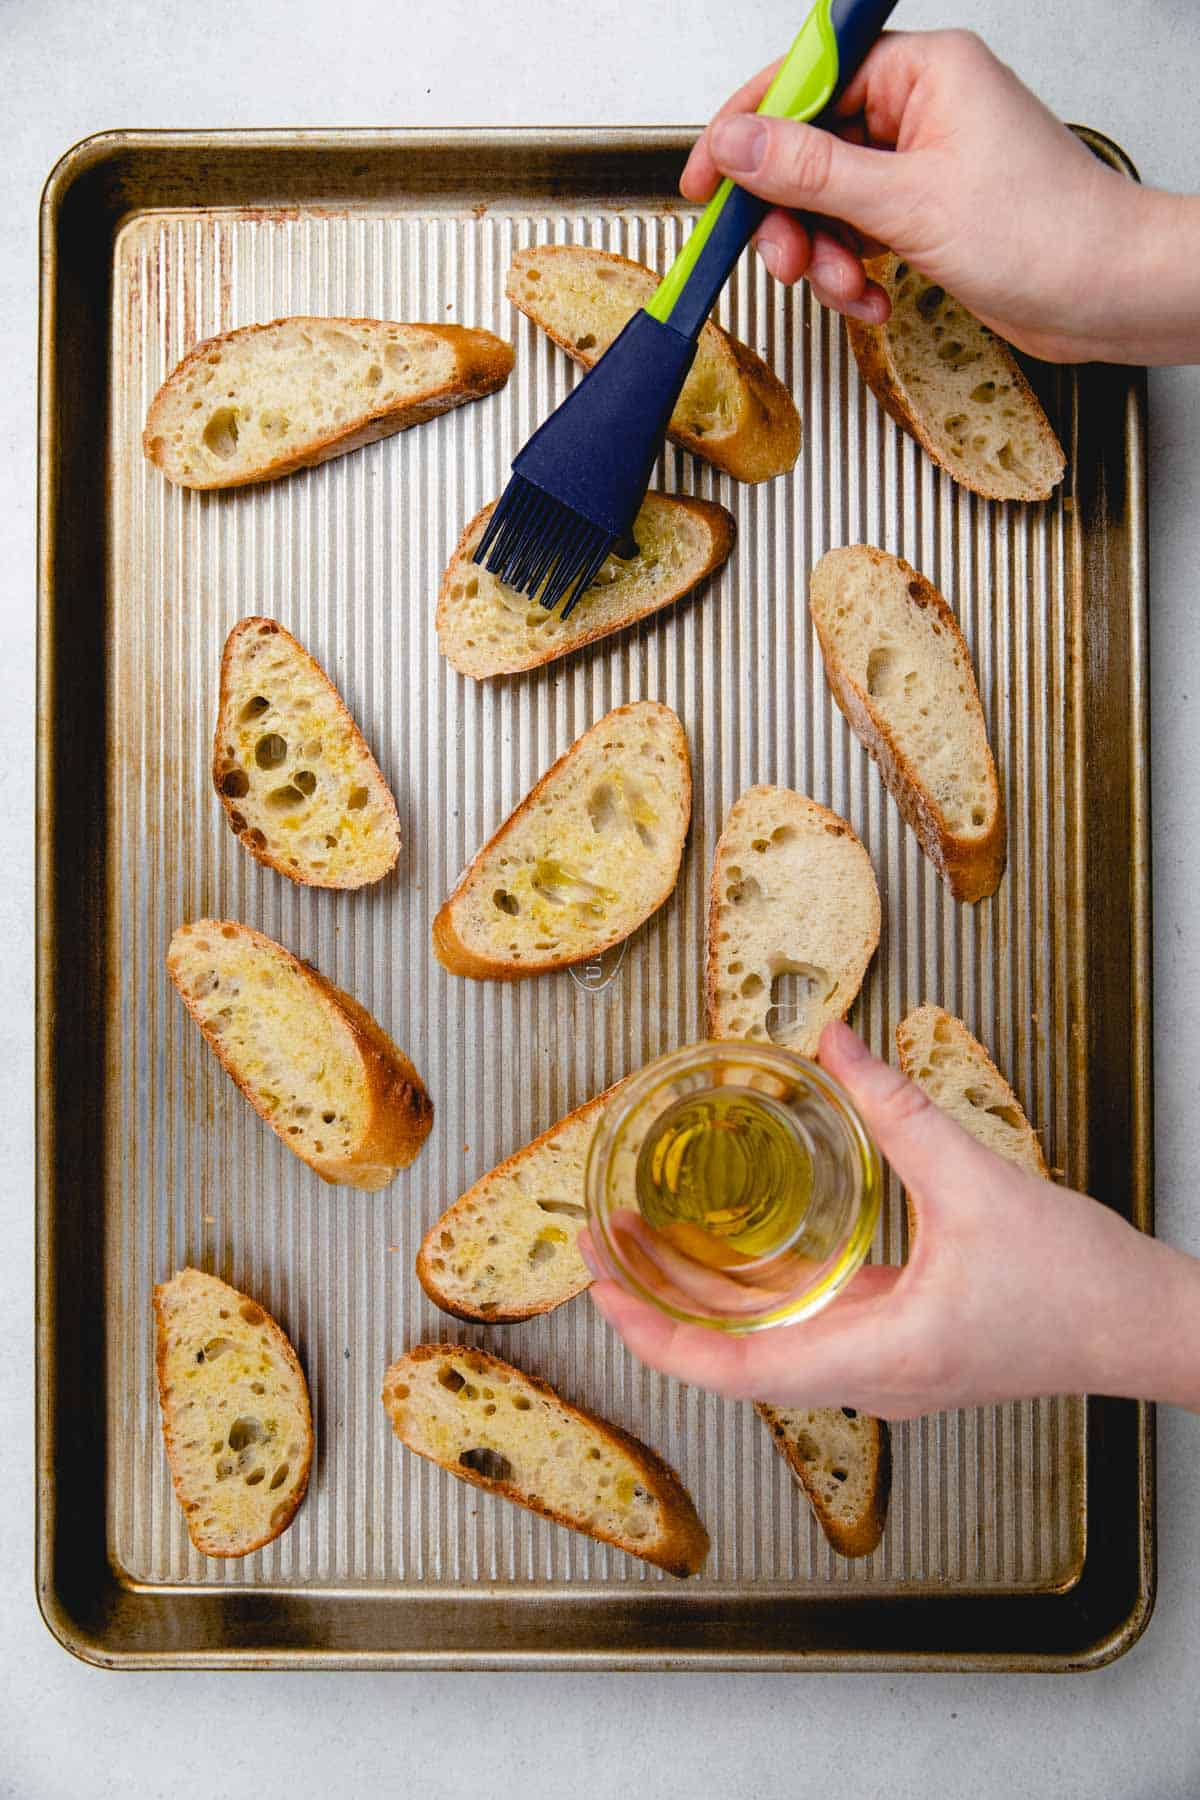 Brushing baguette slices with olive oil.